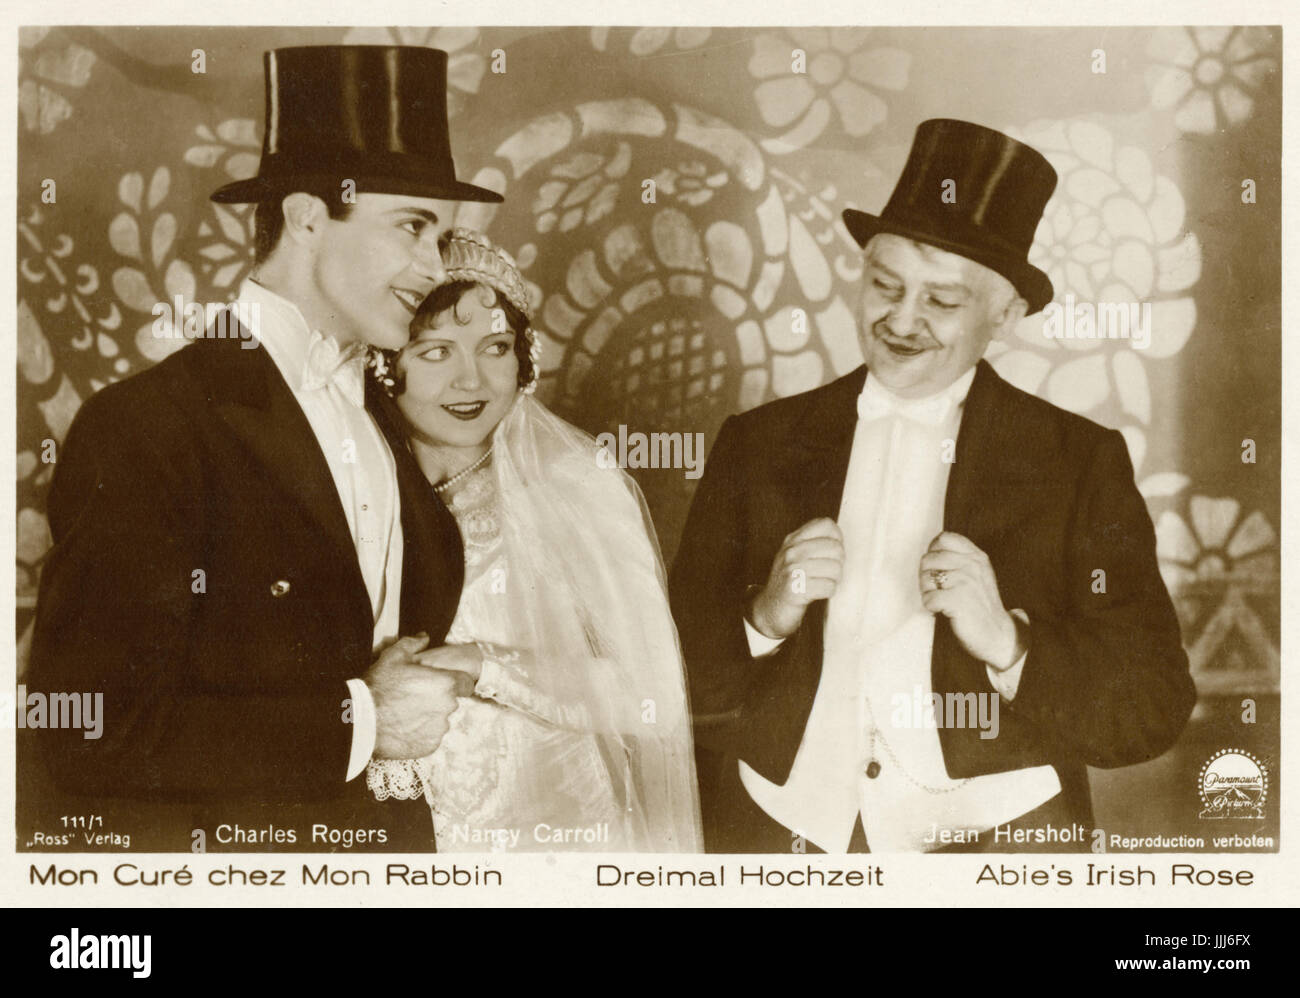 Film 'Abie's Irish Rose, wedding scene, New York, 1920s.  'Dreimal Hochzeit' - 3-time wedding.  'Mon Cure chez Mon Stock Photo